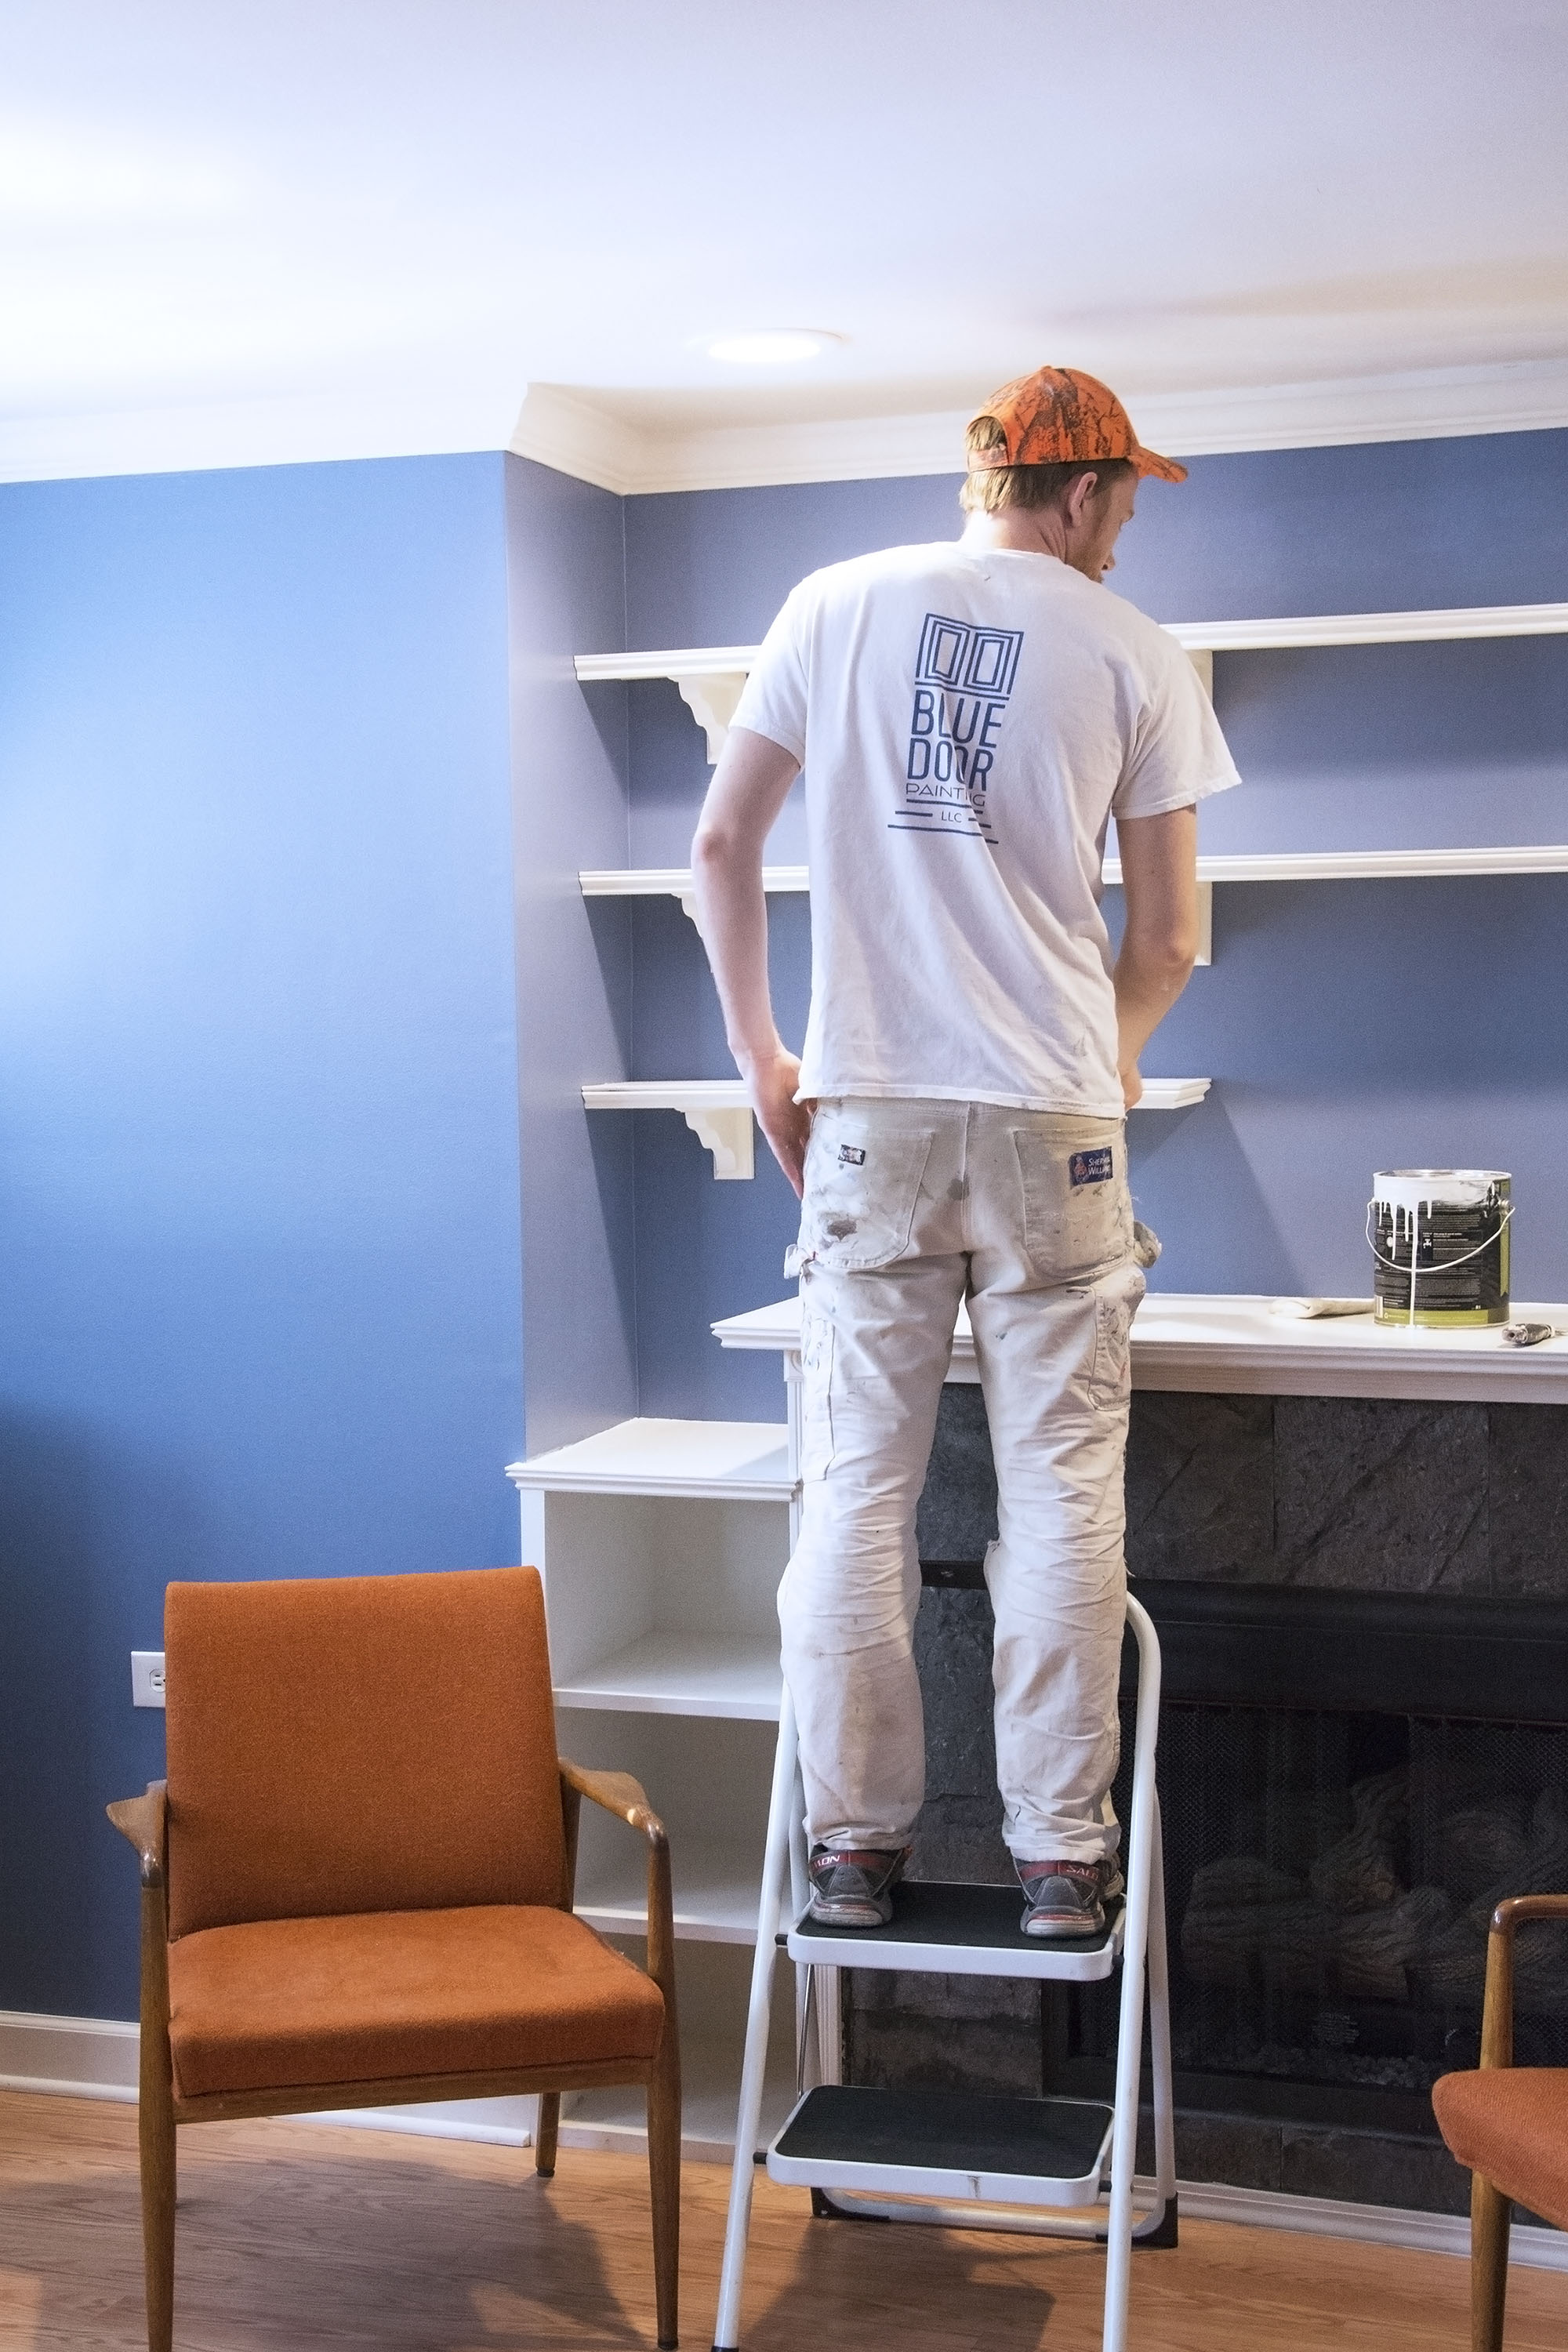 Once the prep work is out of the way, the (priming and) painting can begin! -